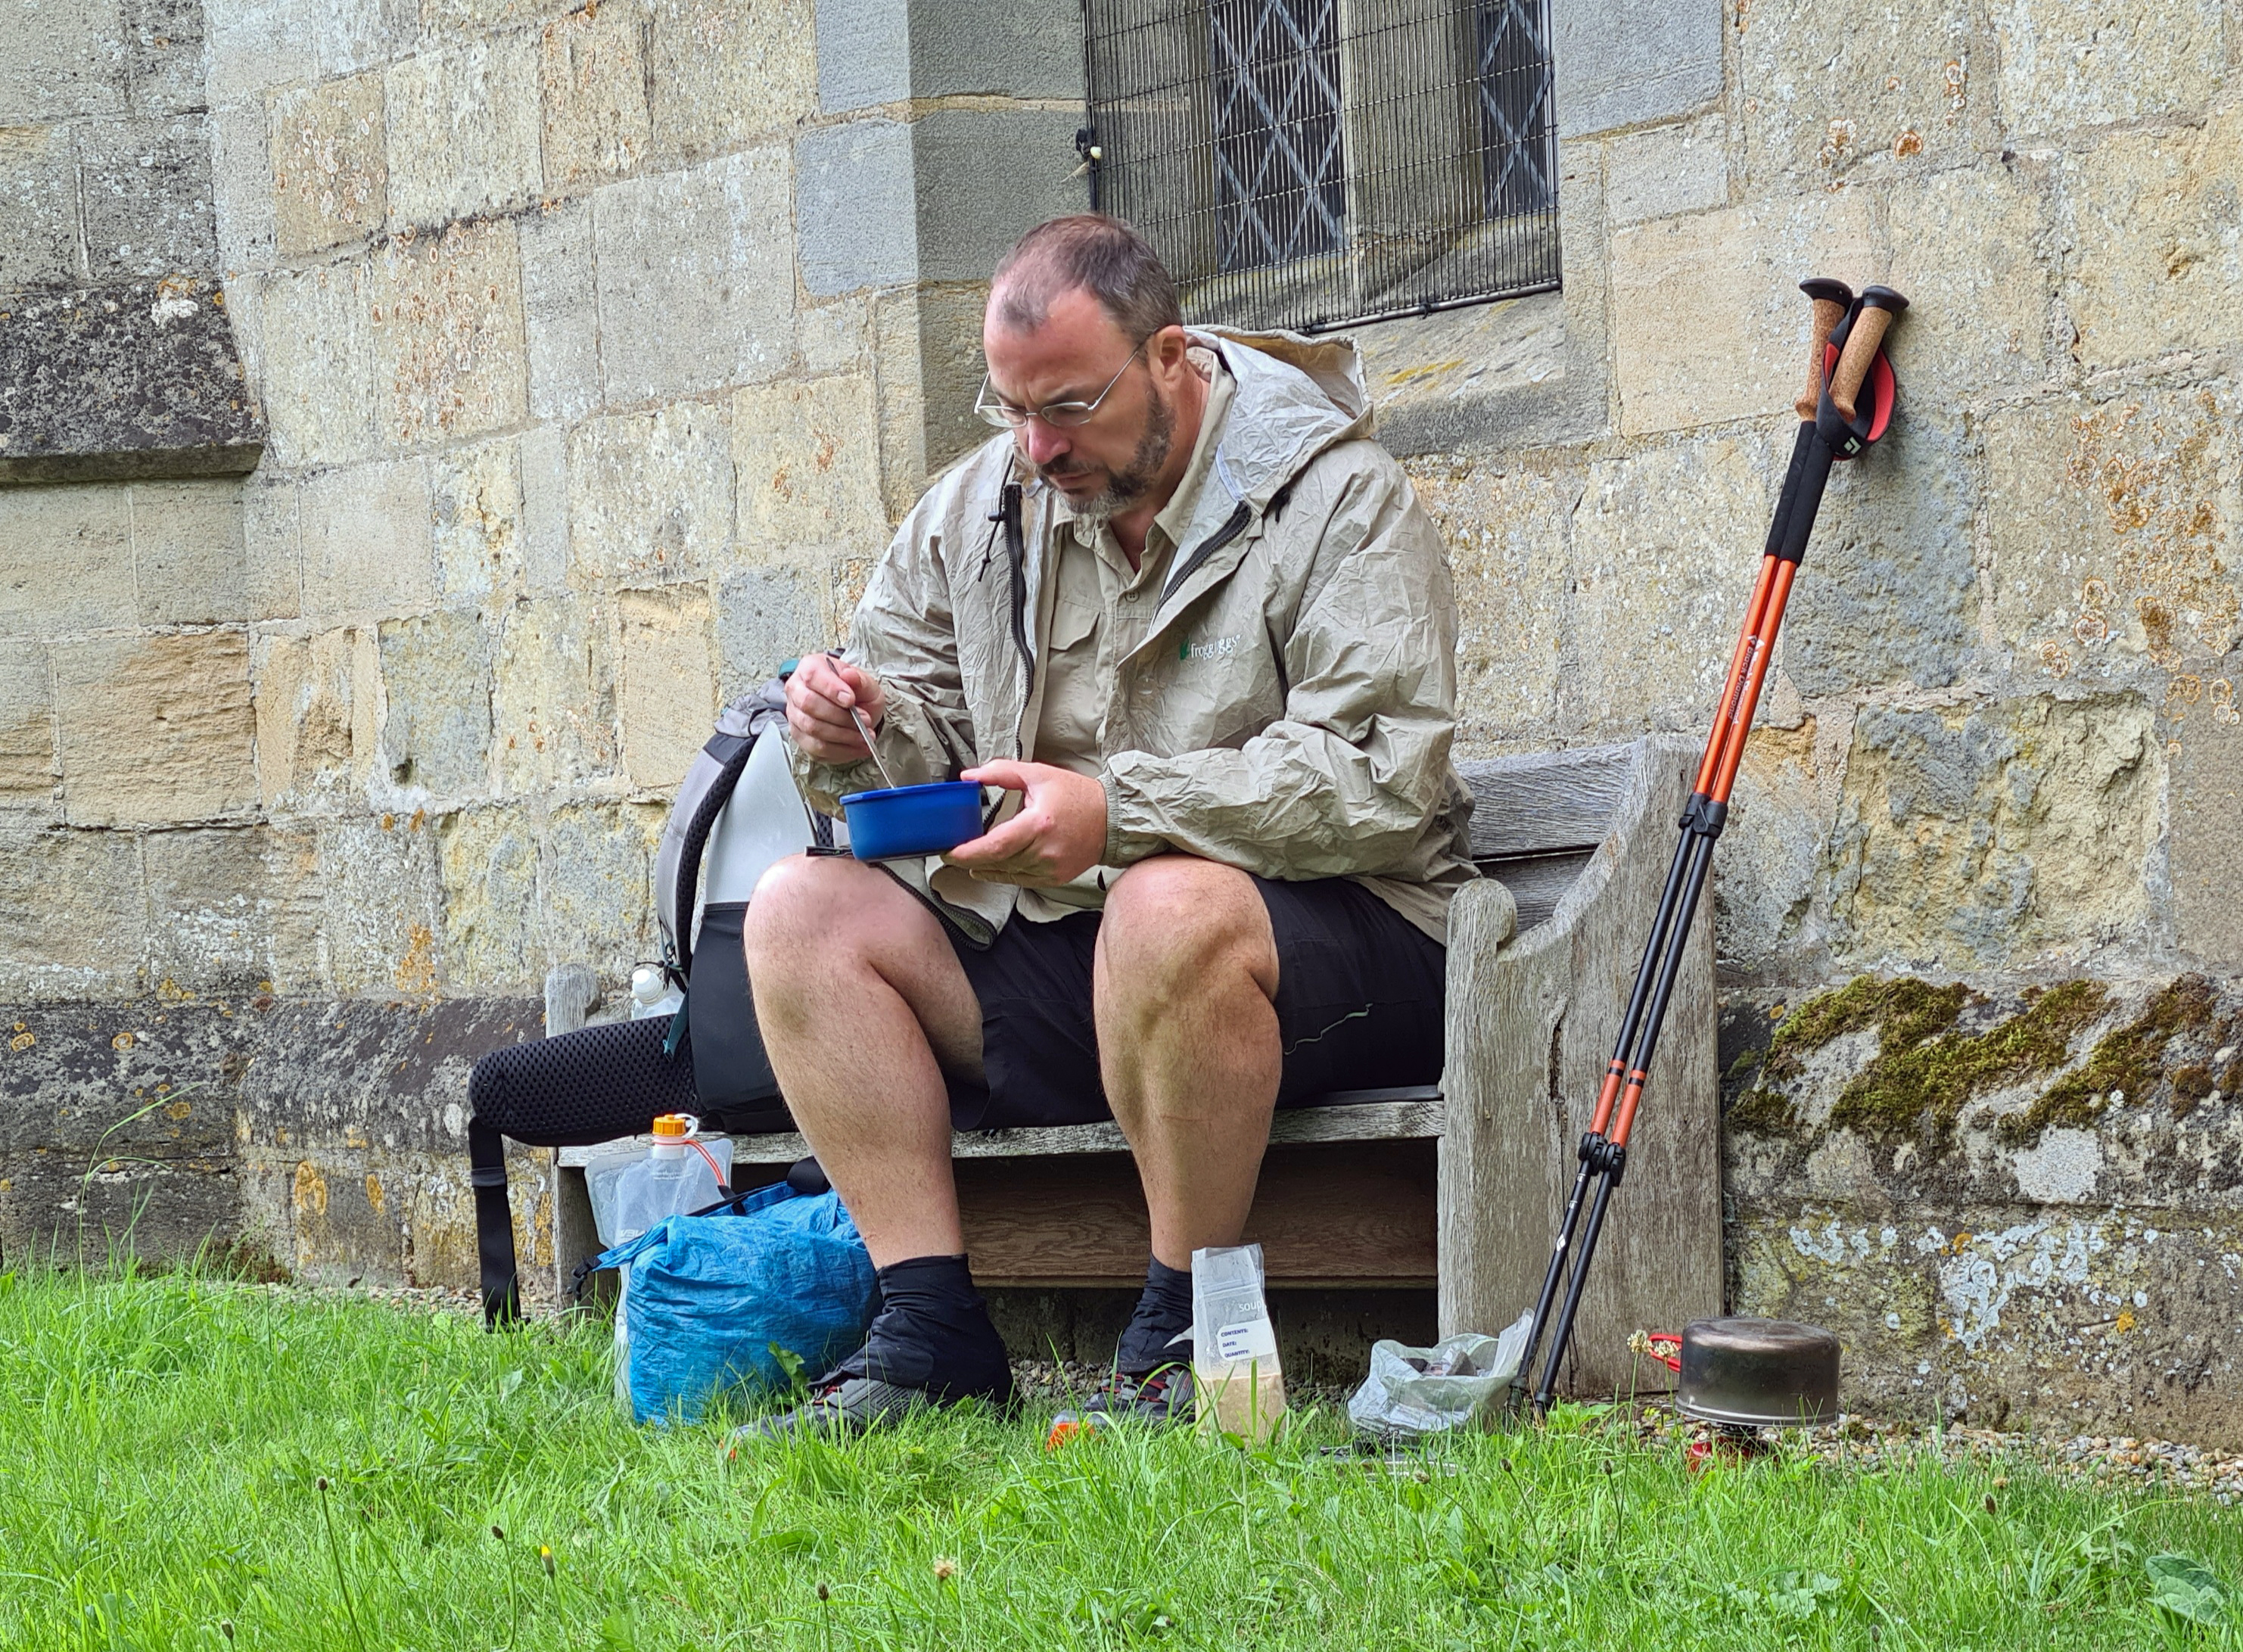 Village churches passed on many UK trails will frequently have a quiet bench tucked away where a halt for a meal can be taken. Mid-morning breakfast at Nunburnholm Church